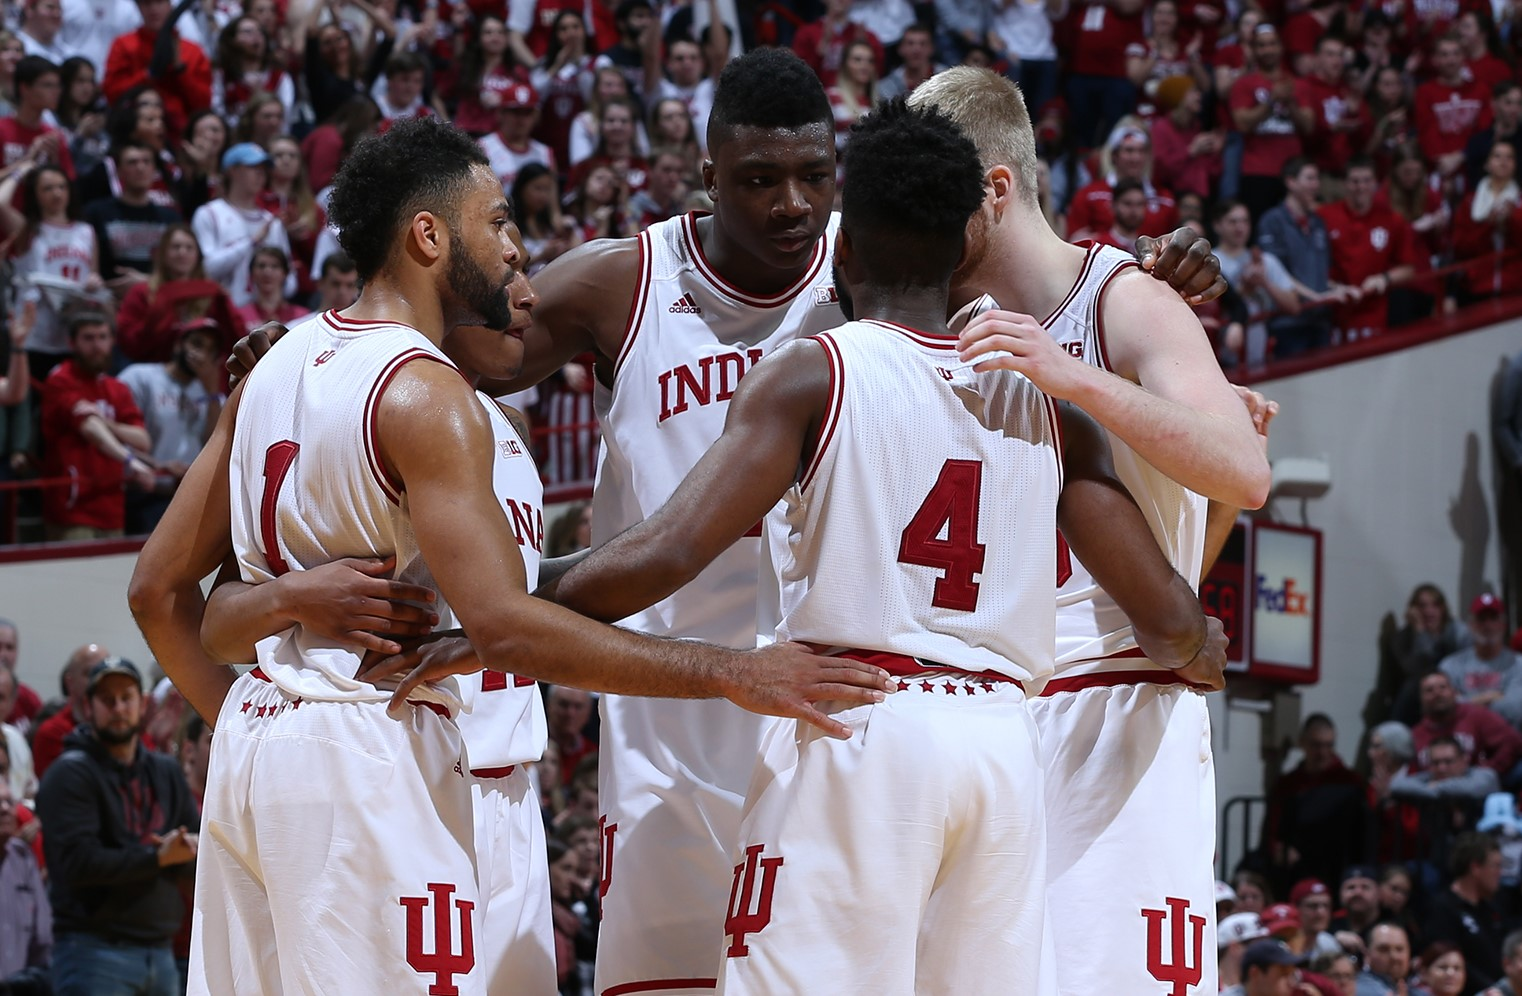 preview: hoosiers at ohio state for regular season finale - indiana